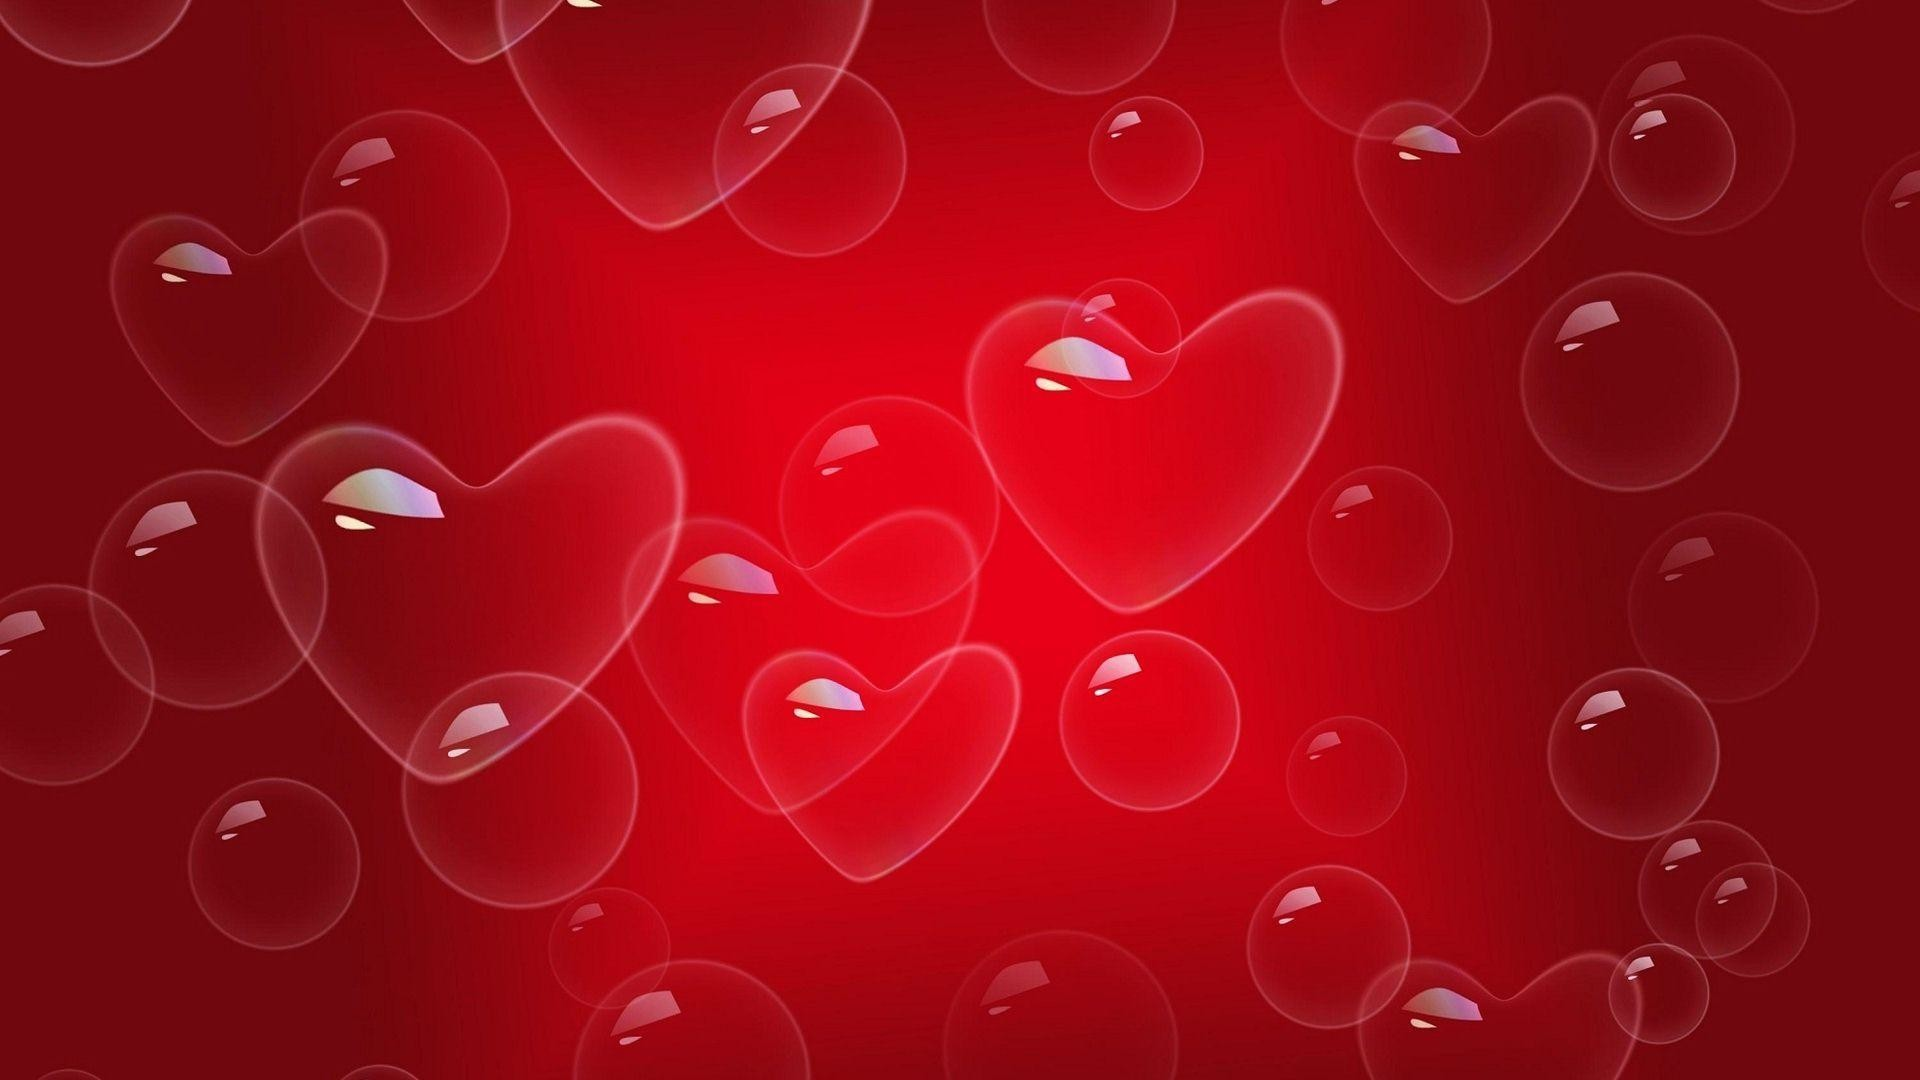 Love Heart Bubbles Red Background Images | HD Wallpapers Images